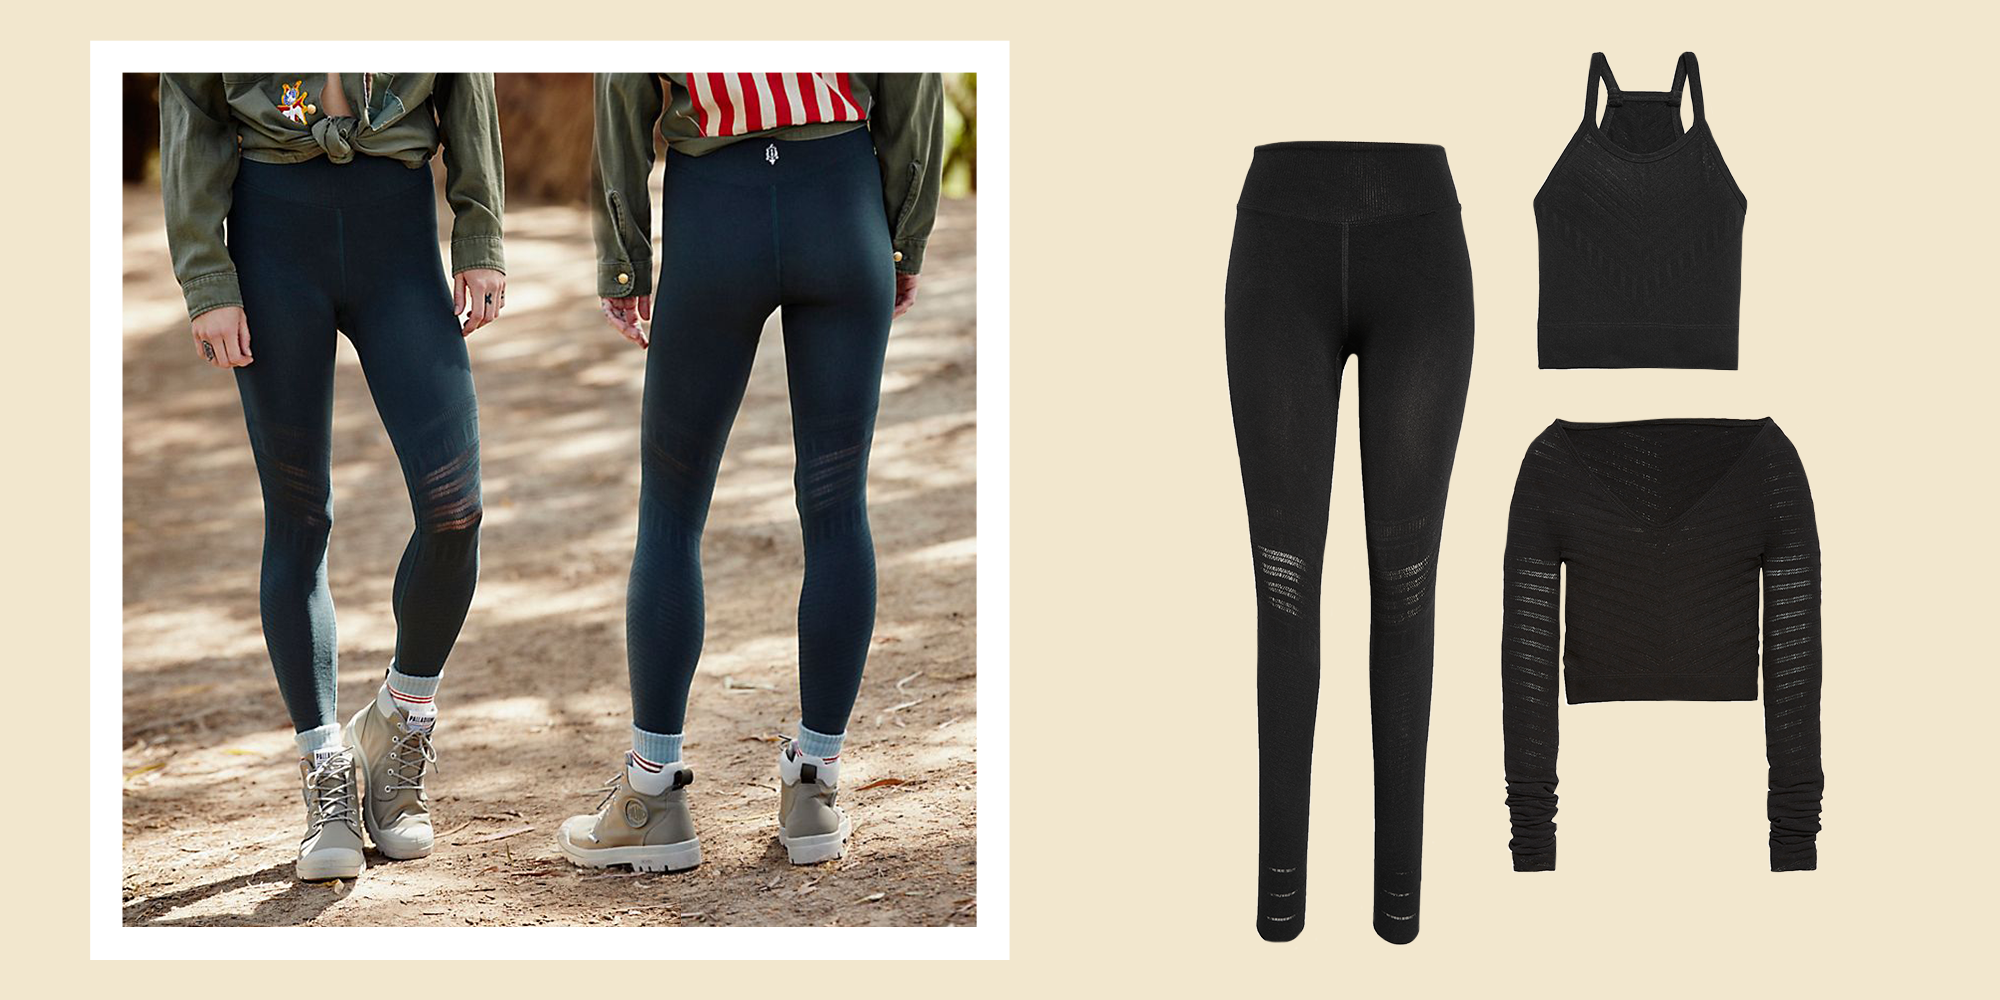 Free People's Econyl Leggings Are Eco-Friendly and Super Comfy